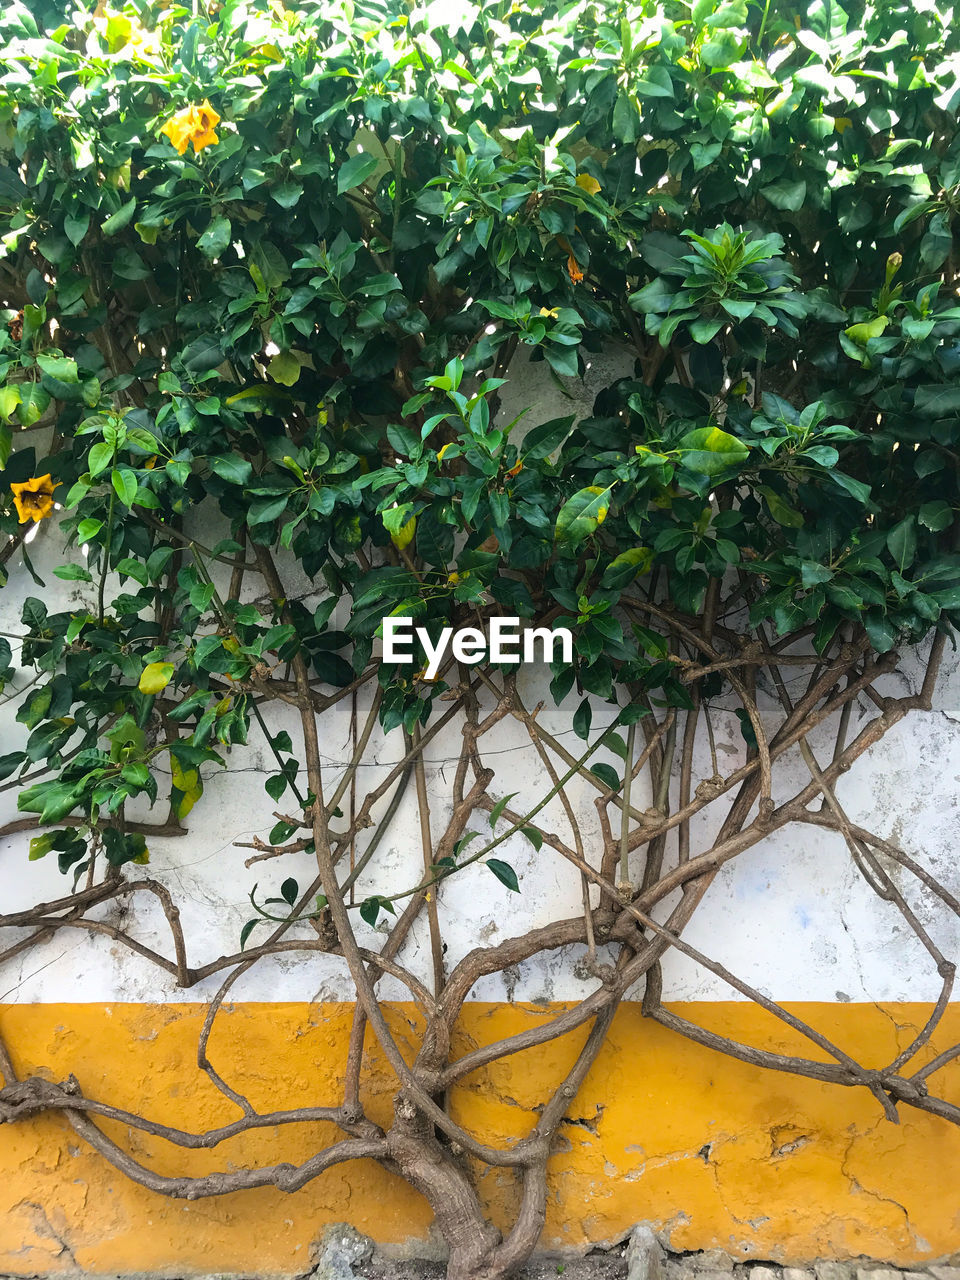 plant, growth, plant part, leaf, green color, day, no people, architecture, nature, wall - building feature, wall, built structure, outdoors, yellow, building exterior, ivy, creeper plant, front or back yard, branch, tree